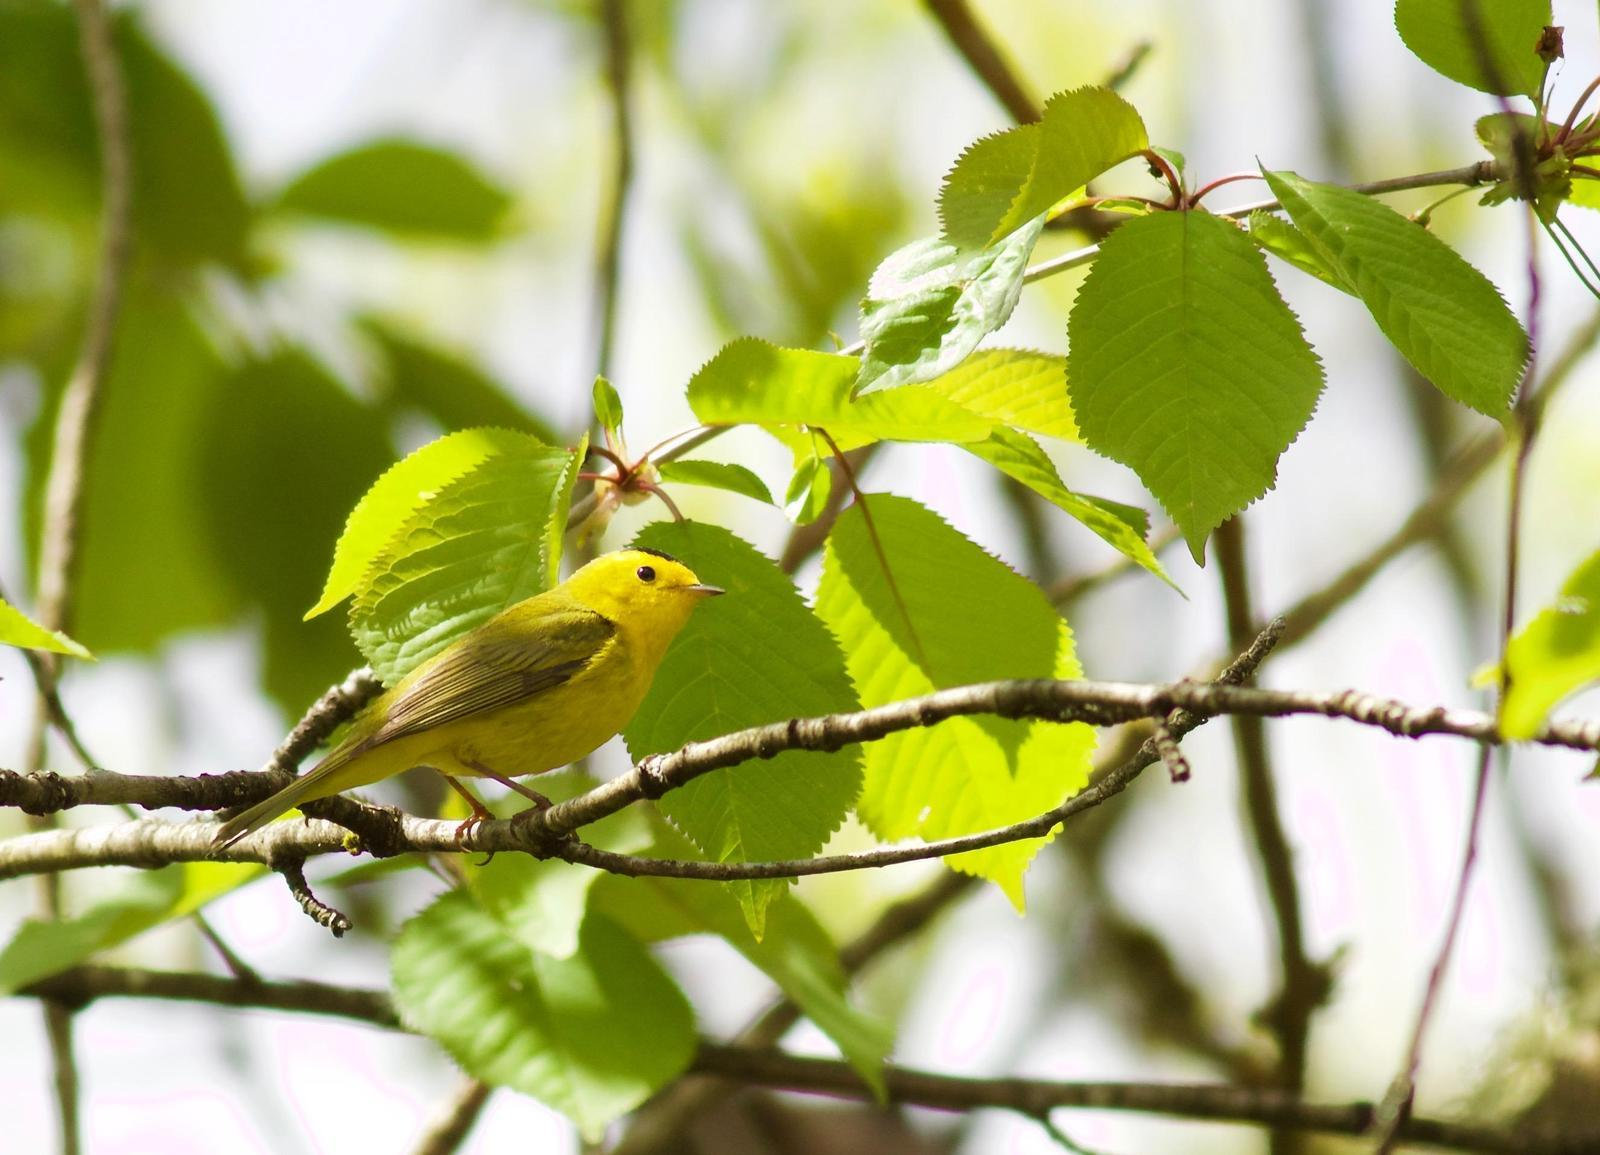 Wilson's Warbler Photo by Kathryn Keith